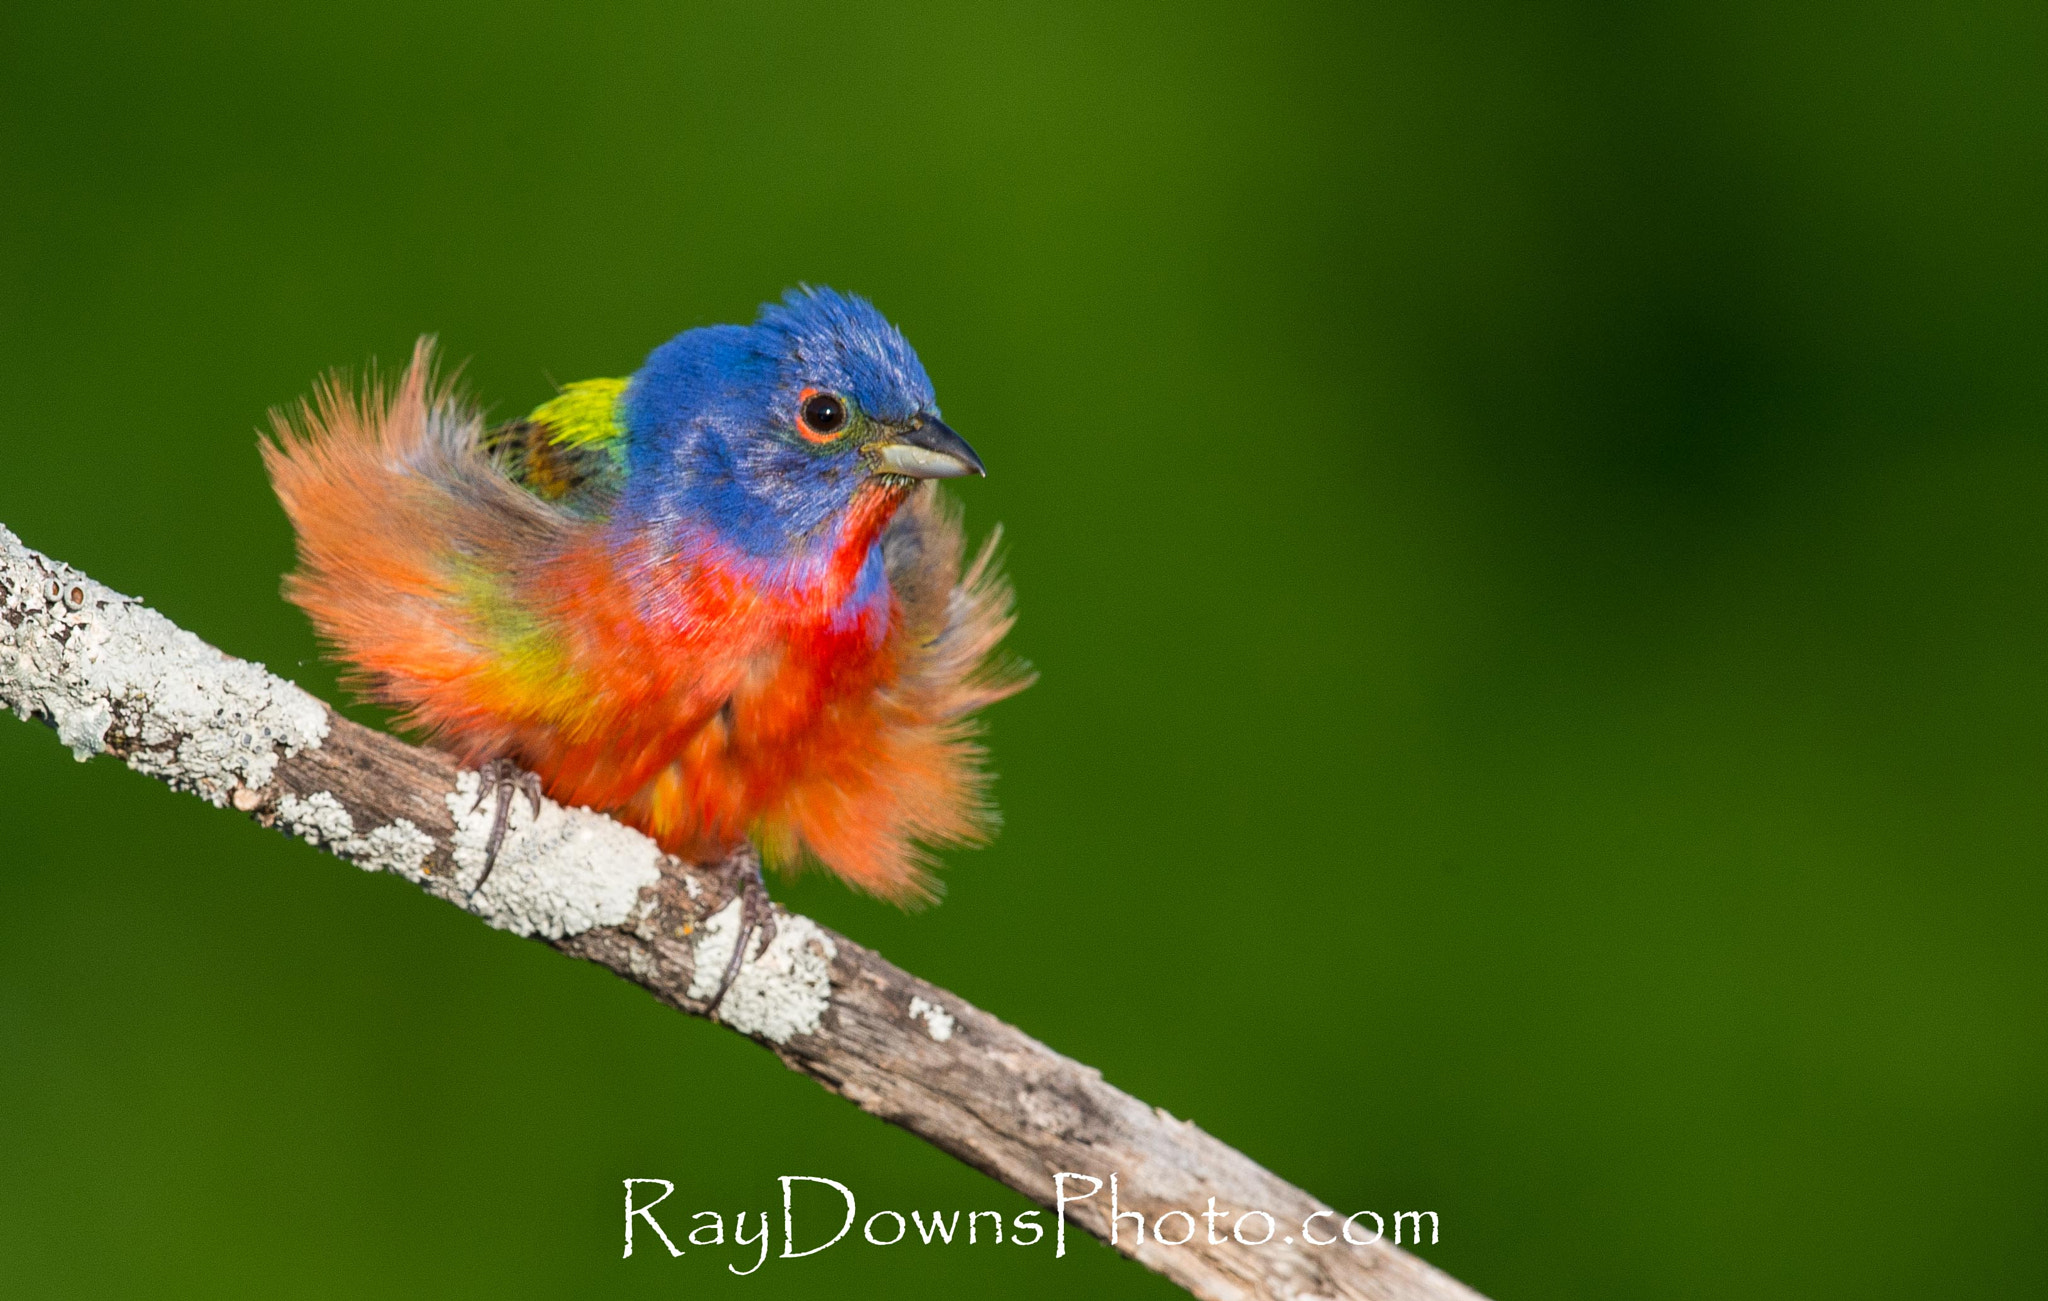 Photograph Painted Bunting ready to fight... by Ray Downs on 500px